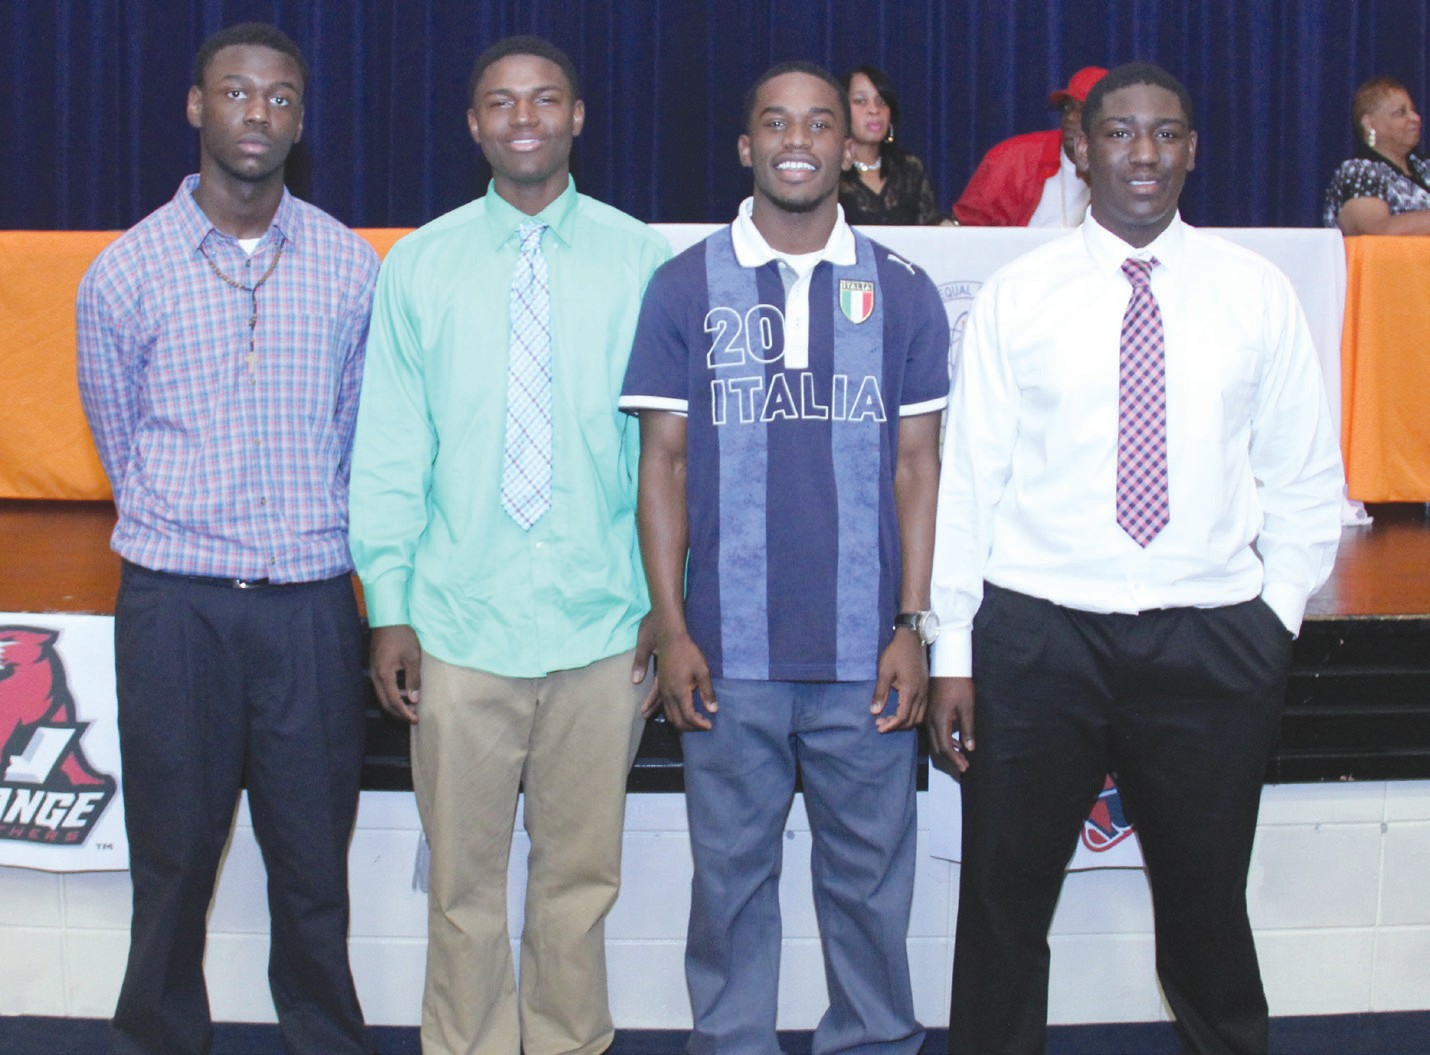 Johnson High School Football players Raquan Green, DeVante Brown,Jailyn Baker signed with Palmetto Prep and JaShaun Carter signed with LaGrange College.